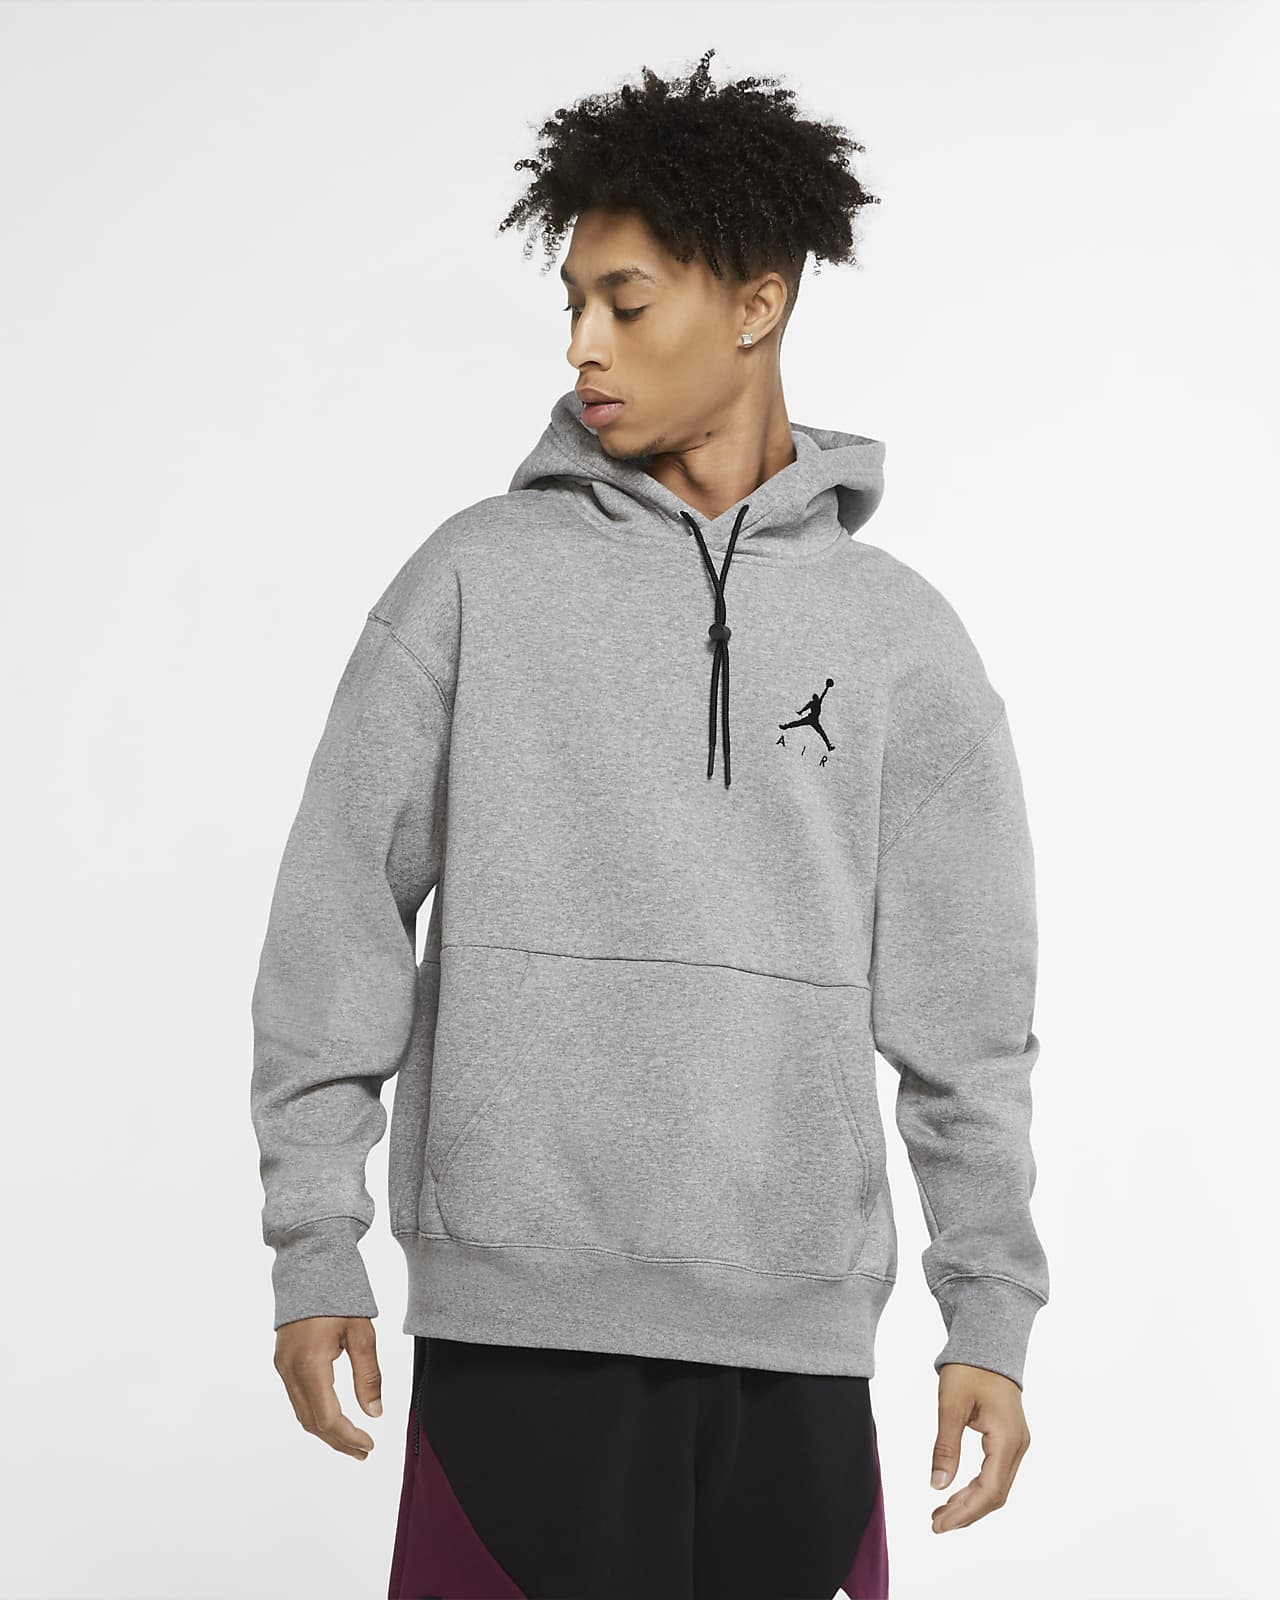 fregar Permanecer realidad  Jordan Jumpman Air Men's Fleece Pullover Hoodie. Nike GB